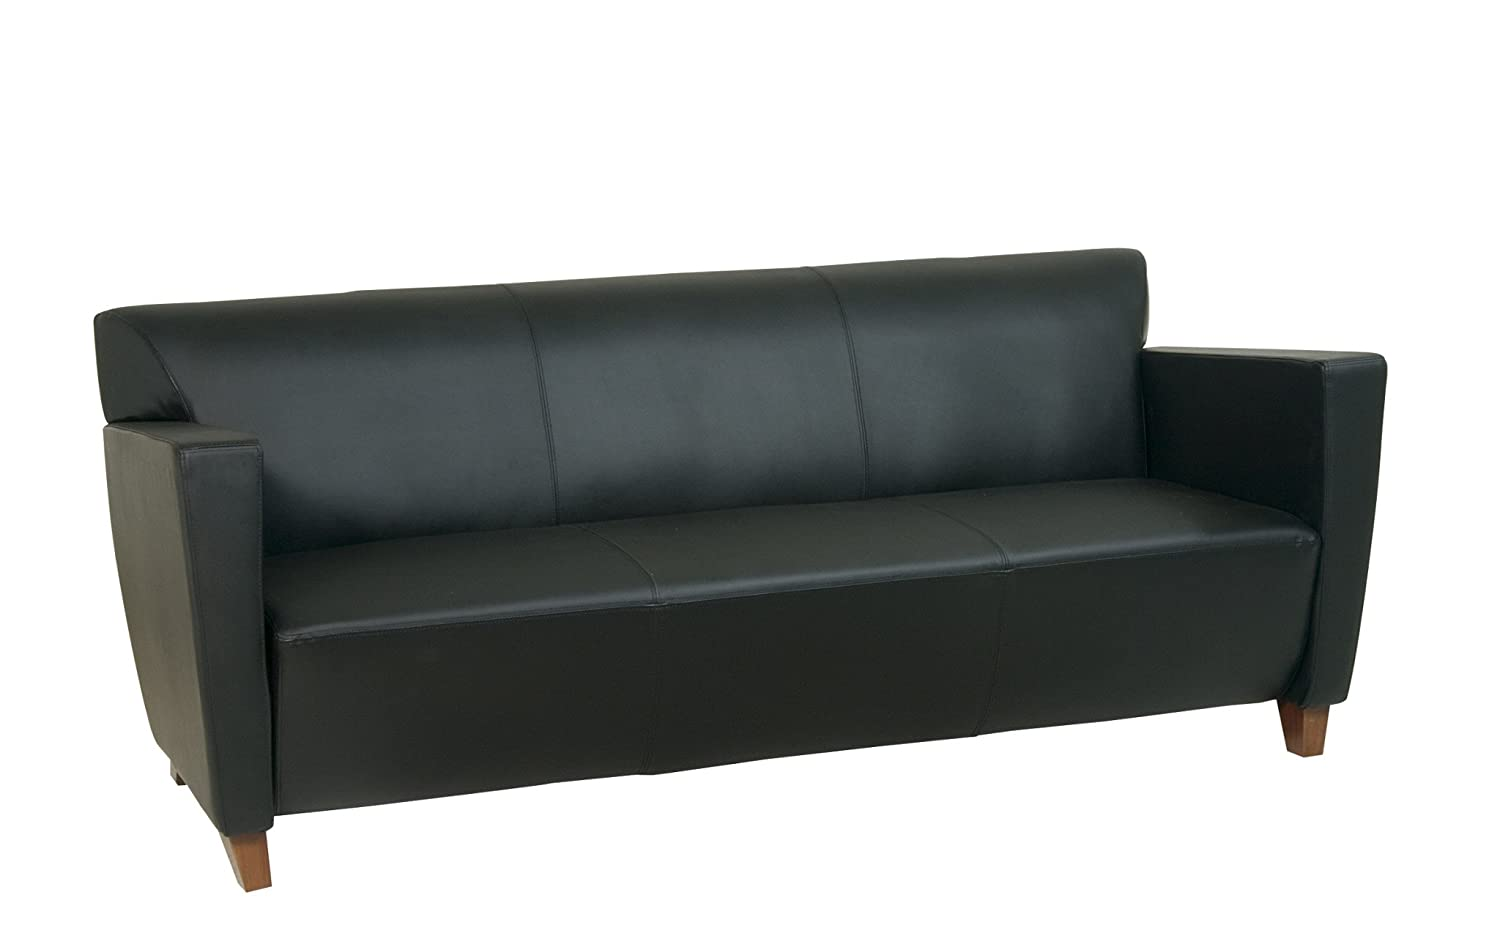 Black Leather Couch Part - 28: Amazon.com: Office Star Modern Leather Sofa With Cherry Finish Legs, Black:  Kitchen U0026 Dining